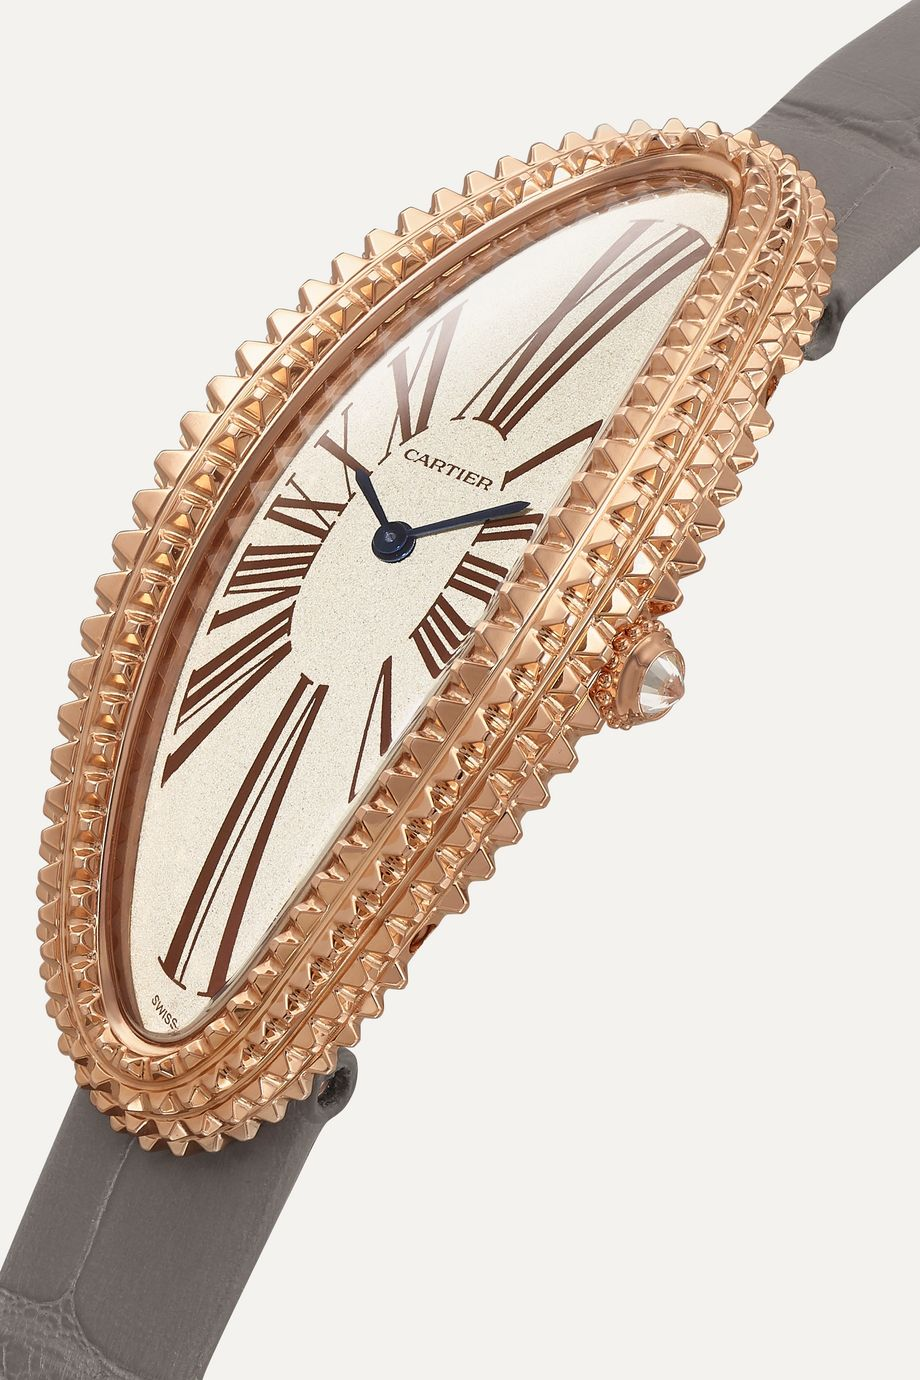 Cartier Montre en or rose 18 carats et diamant à bracelet en alligator Baignoire Allongée Medium 47 mm